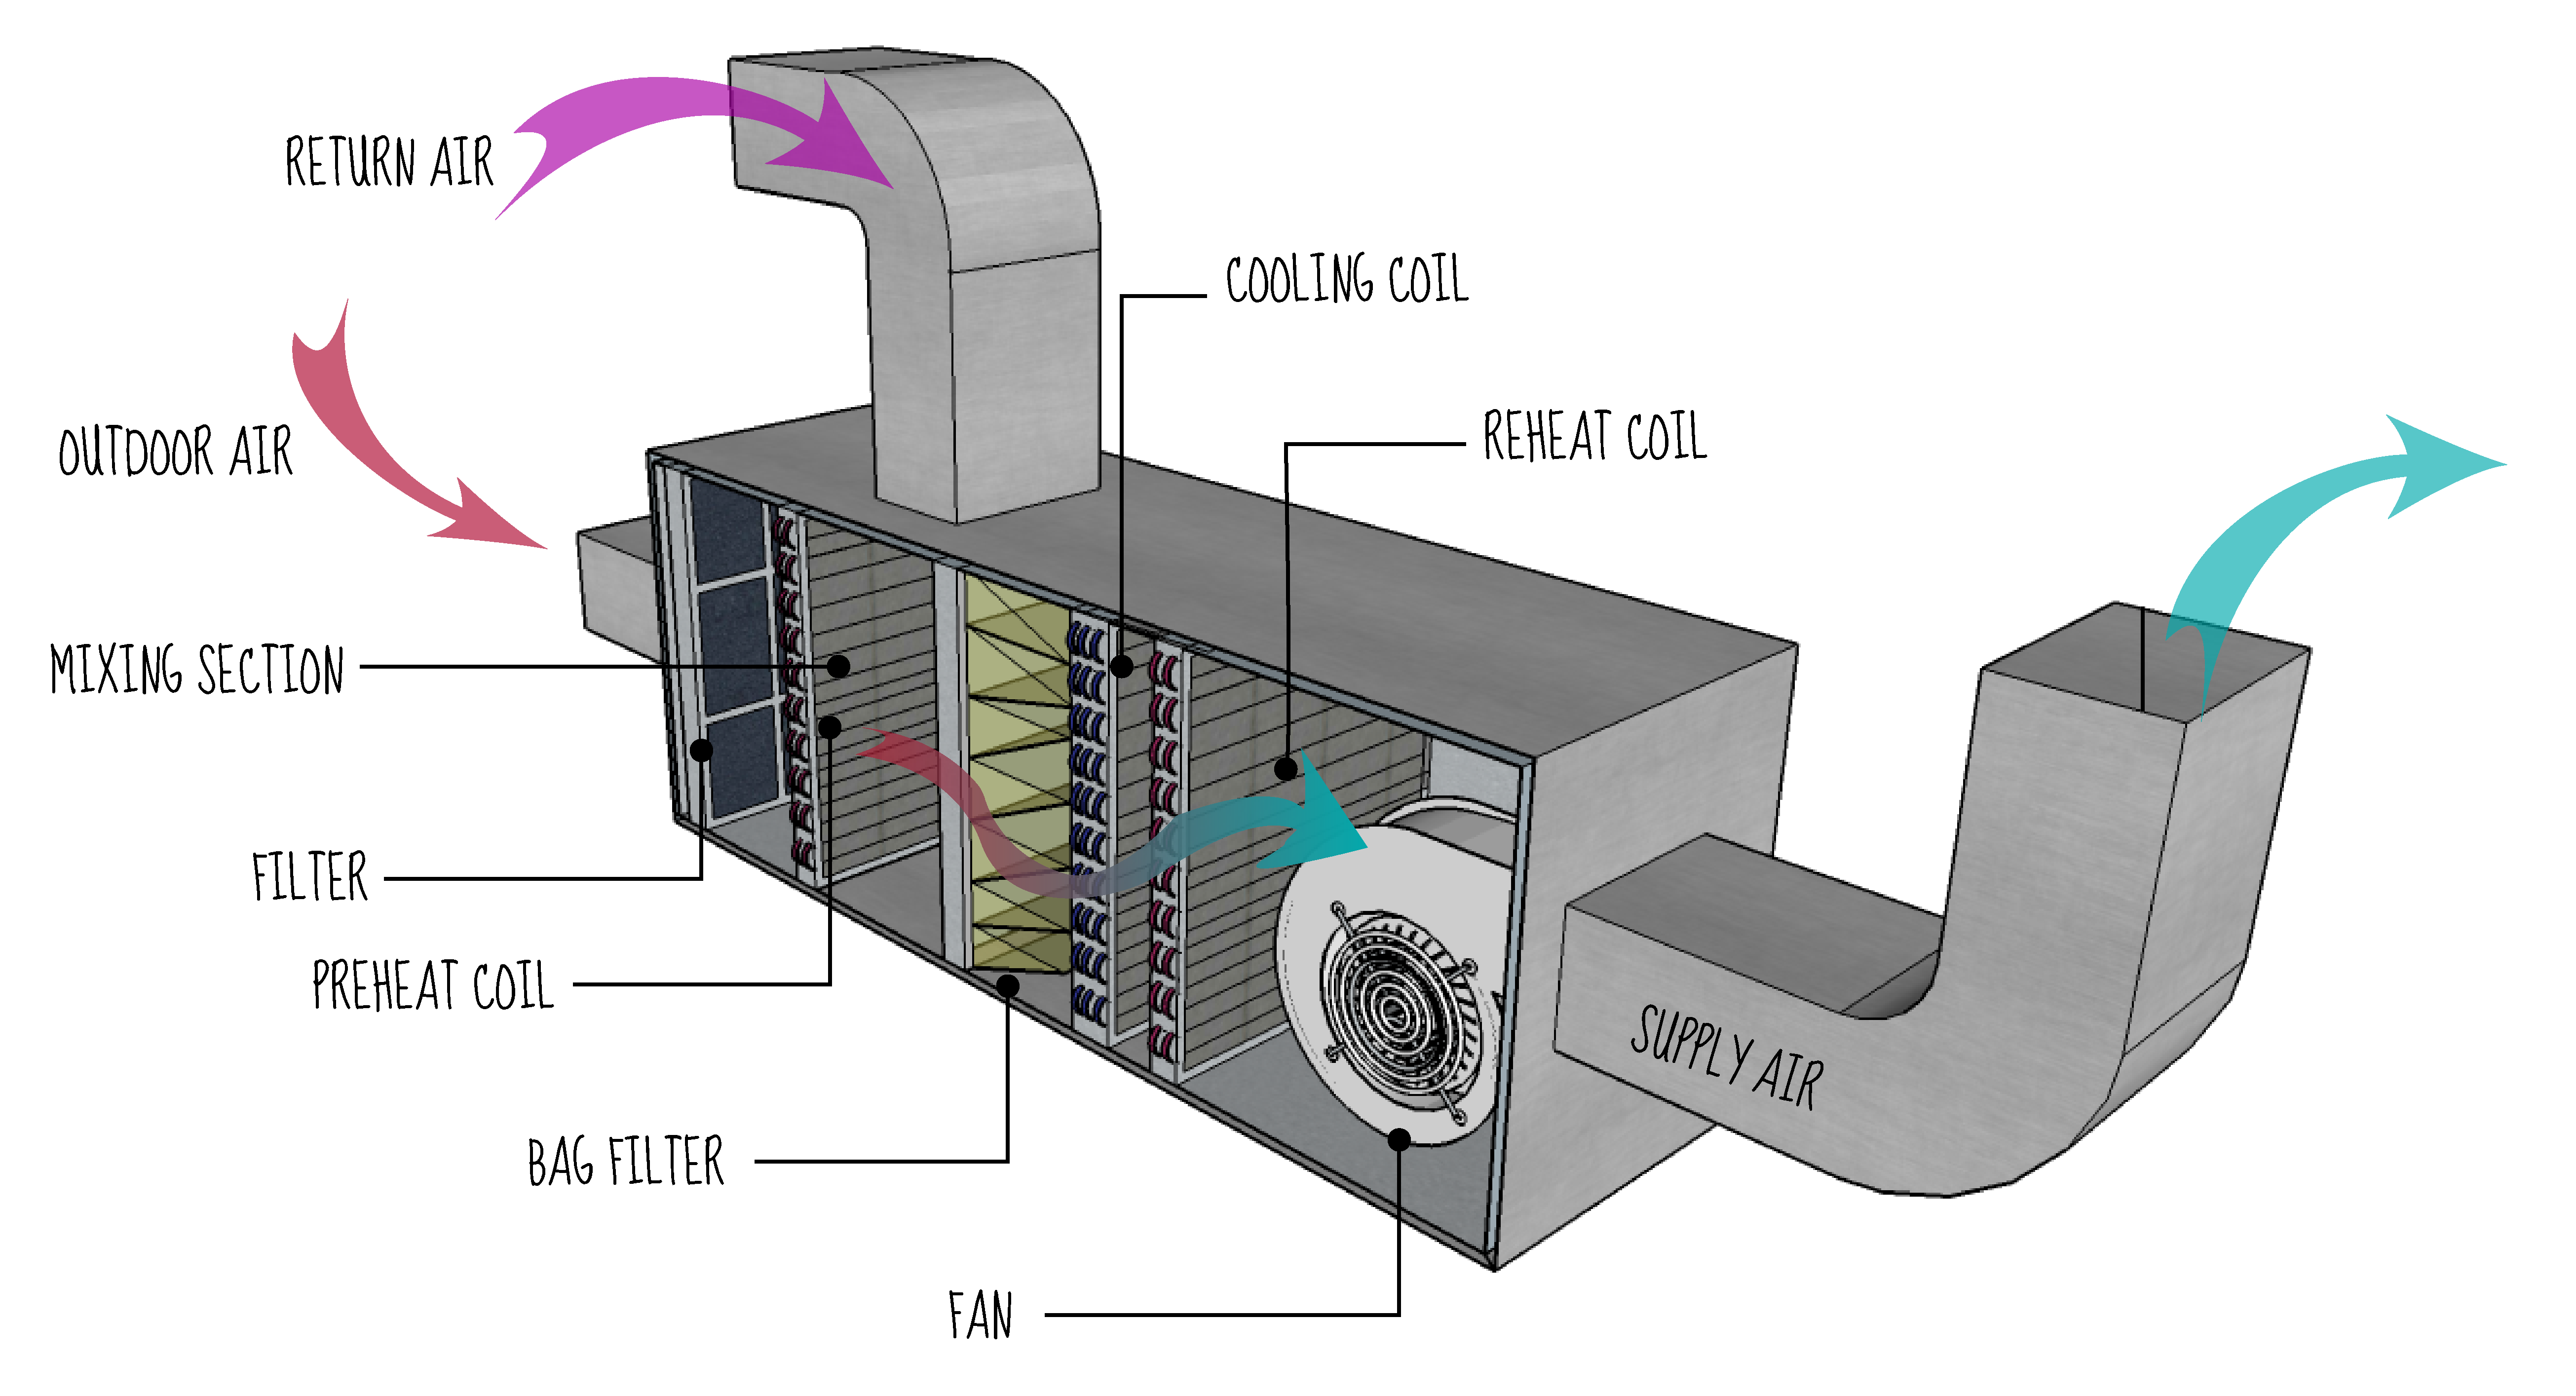 furnace ductwork diagram dorman 4 pin relay wiring image result for ahu layout air conditioning heating